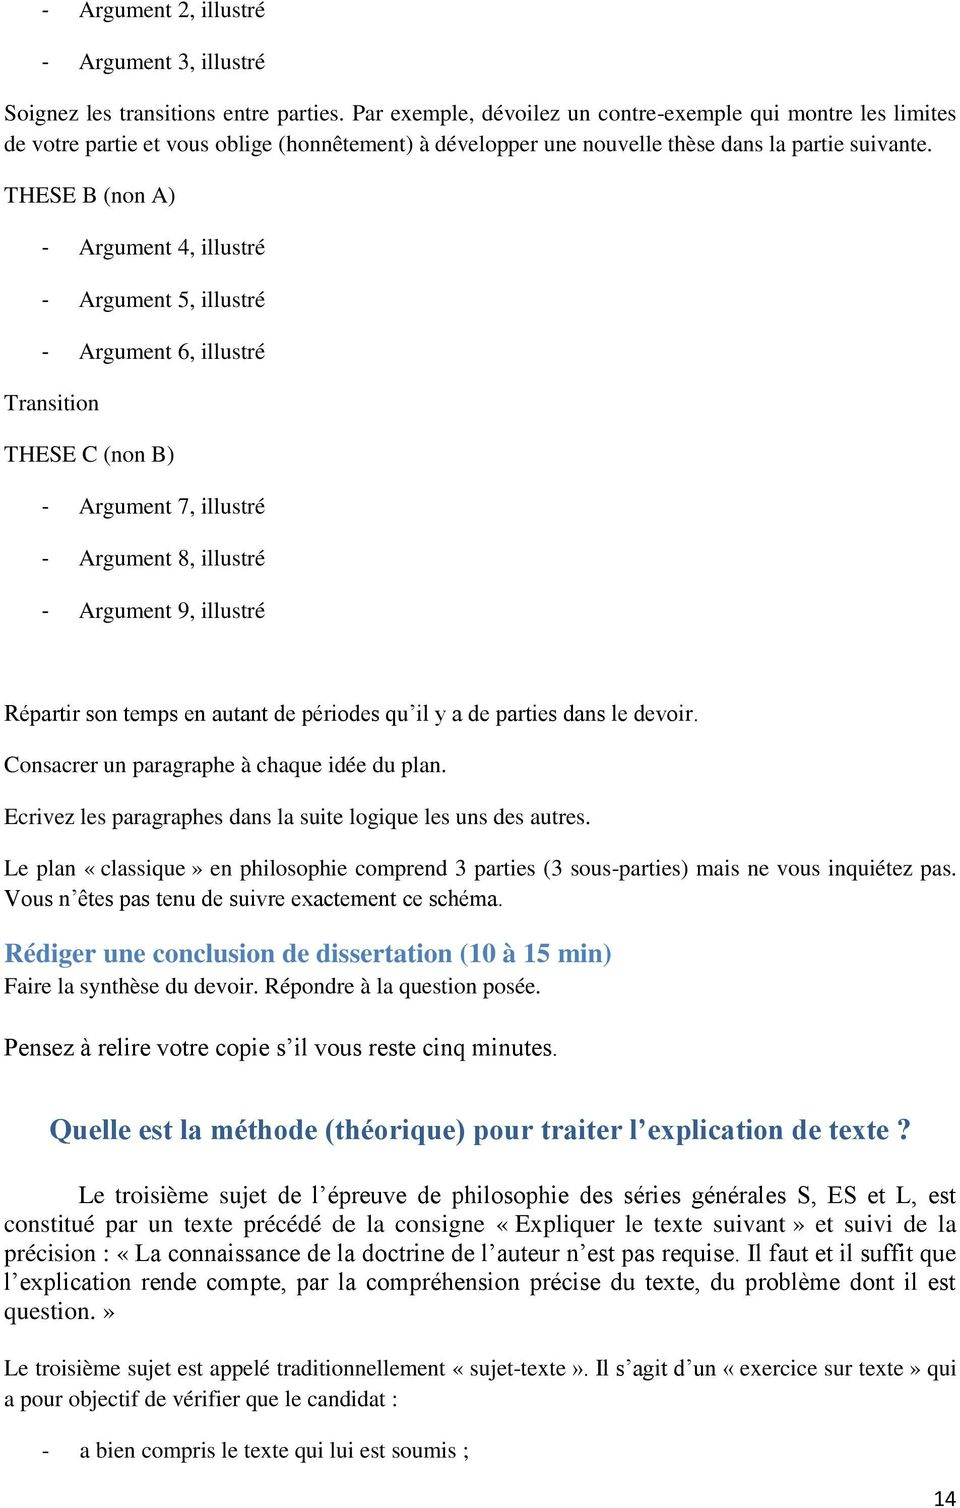 THESE B (non A) - Argument 4, illustré - Argument 5, illustré - Argument 6, illustré Transition THESE C (non B) - Argument 7, illustré - Argument 8, illustré - Argument 9, illustré Répartir son temps